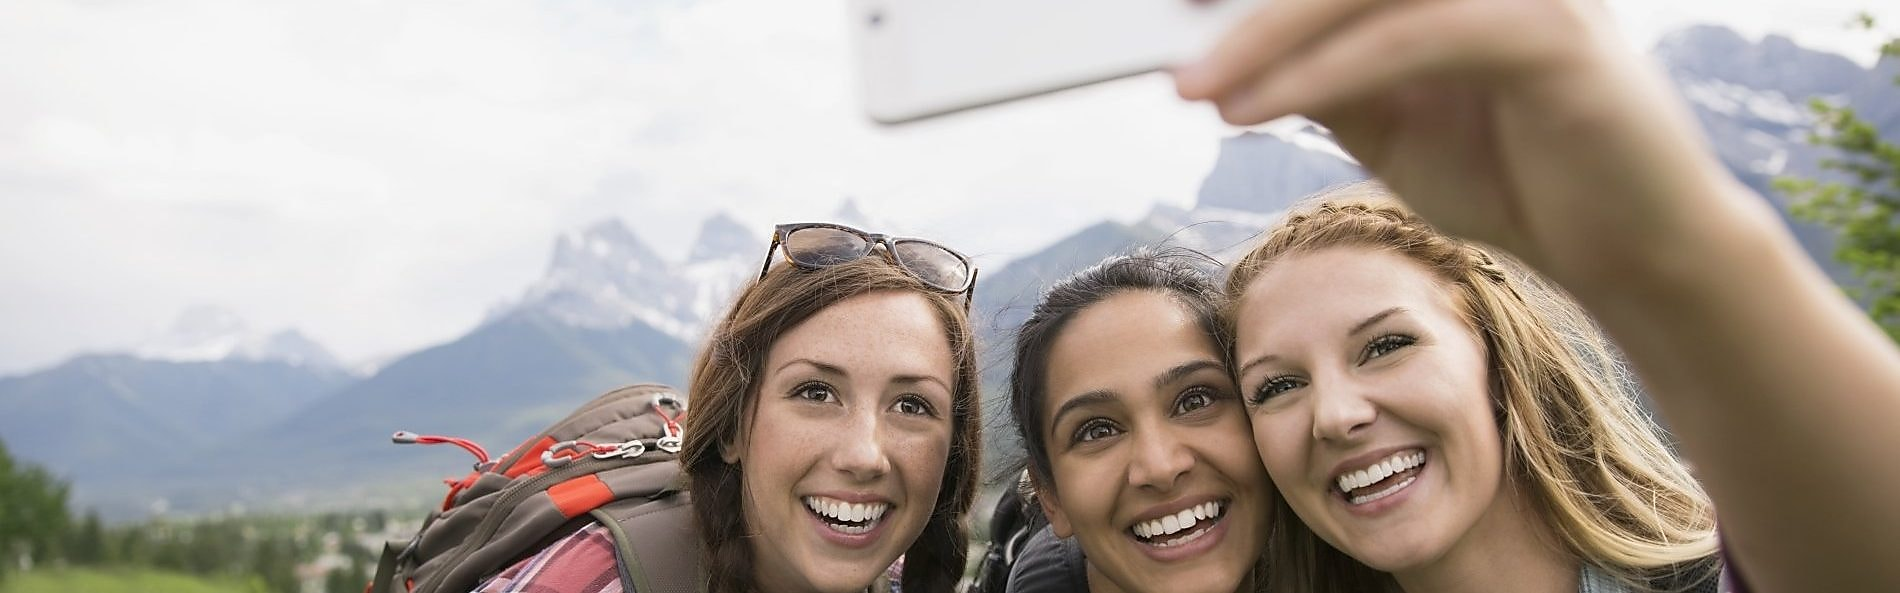 three girls taking selfie while on adventure